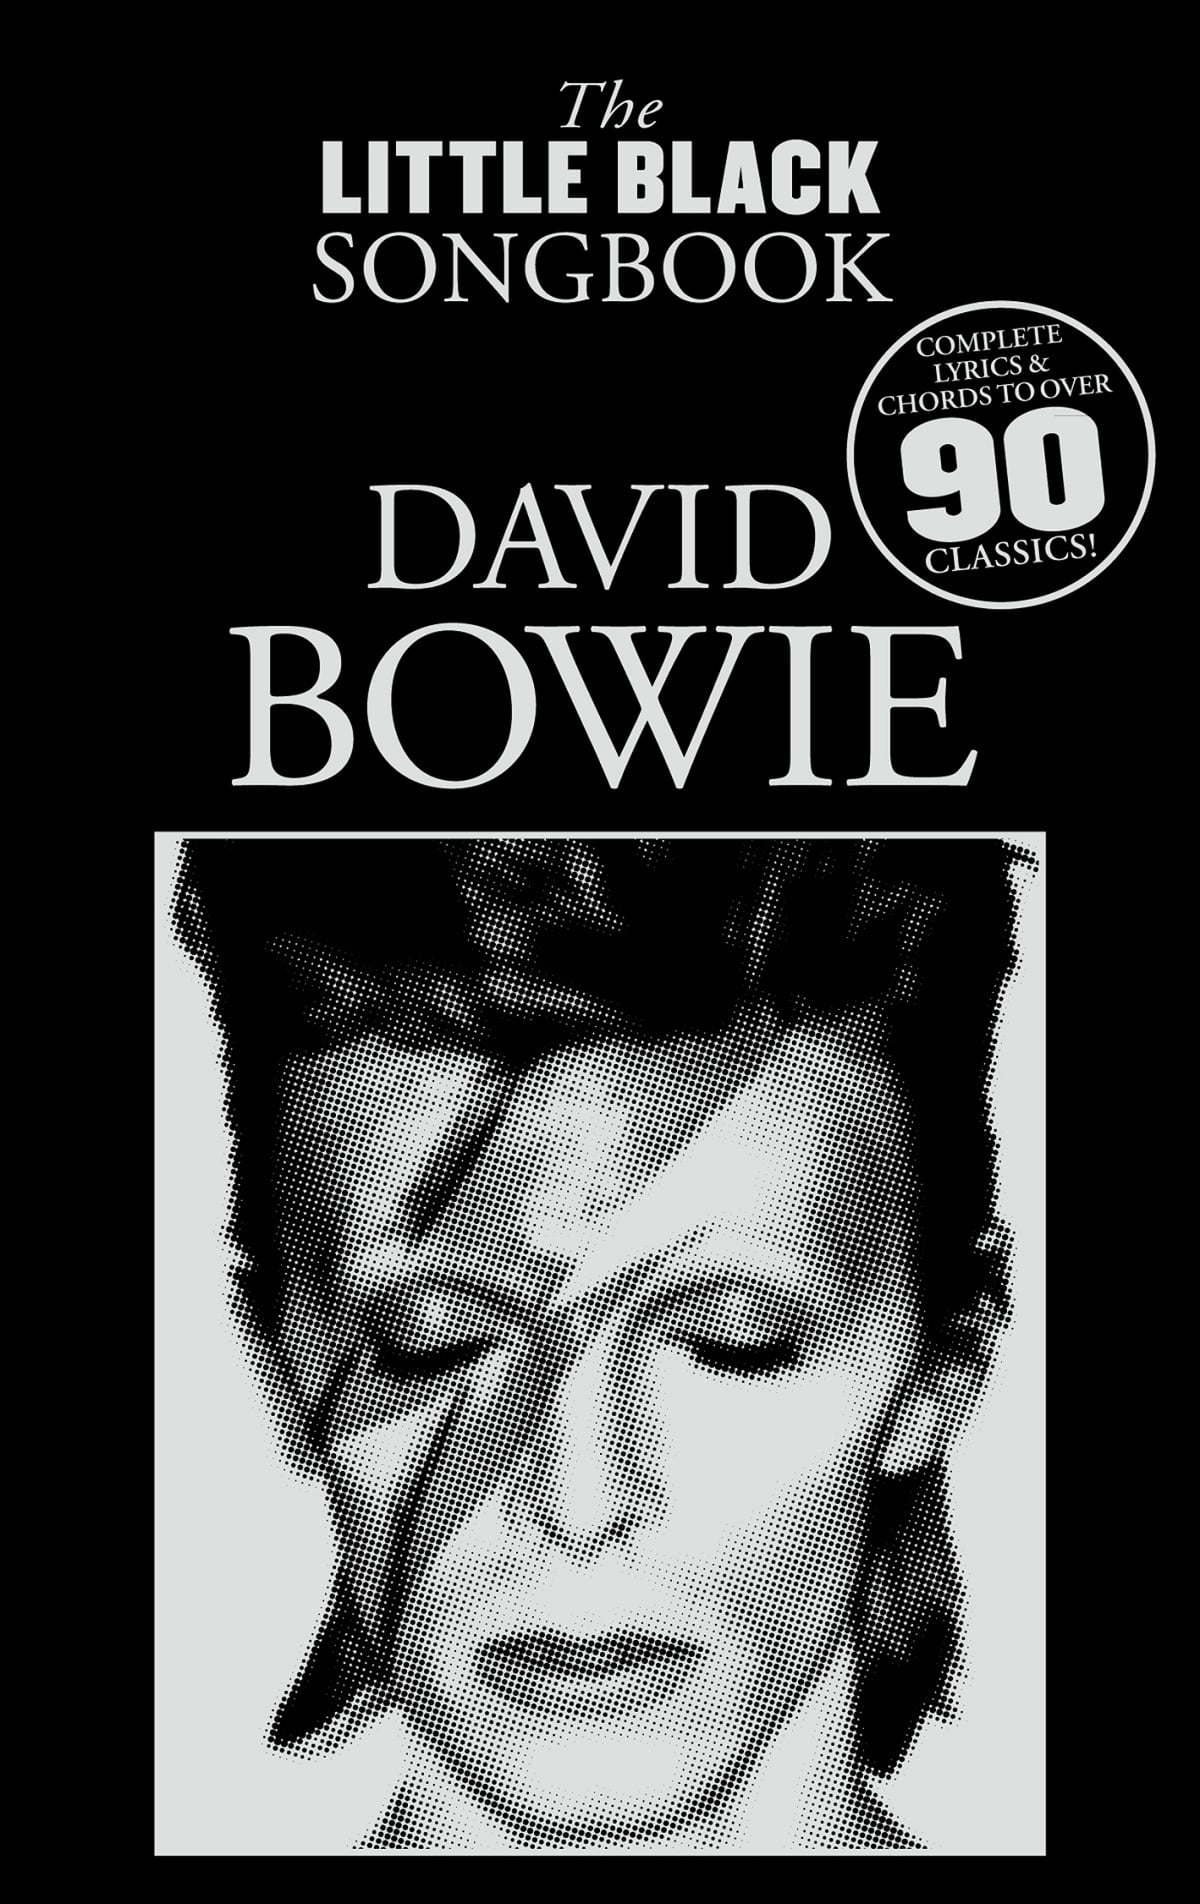 The Little Black Songbook David Bowie Ebook By Adrian Hopkins